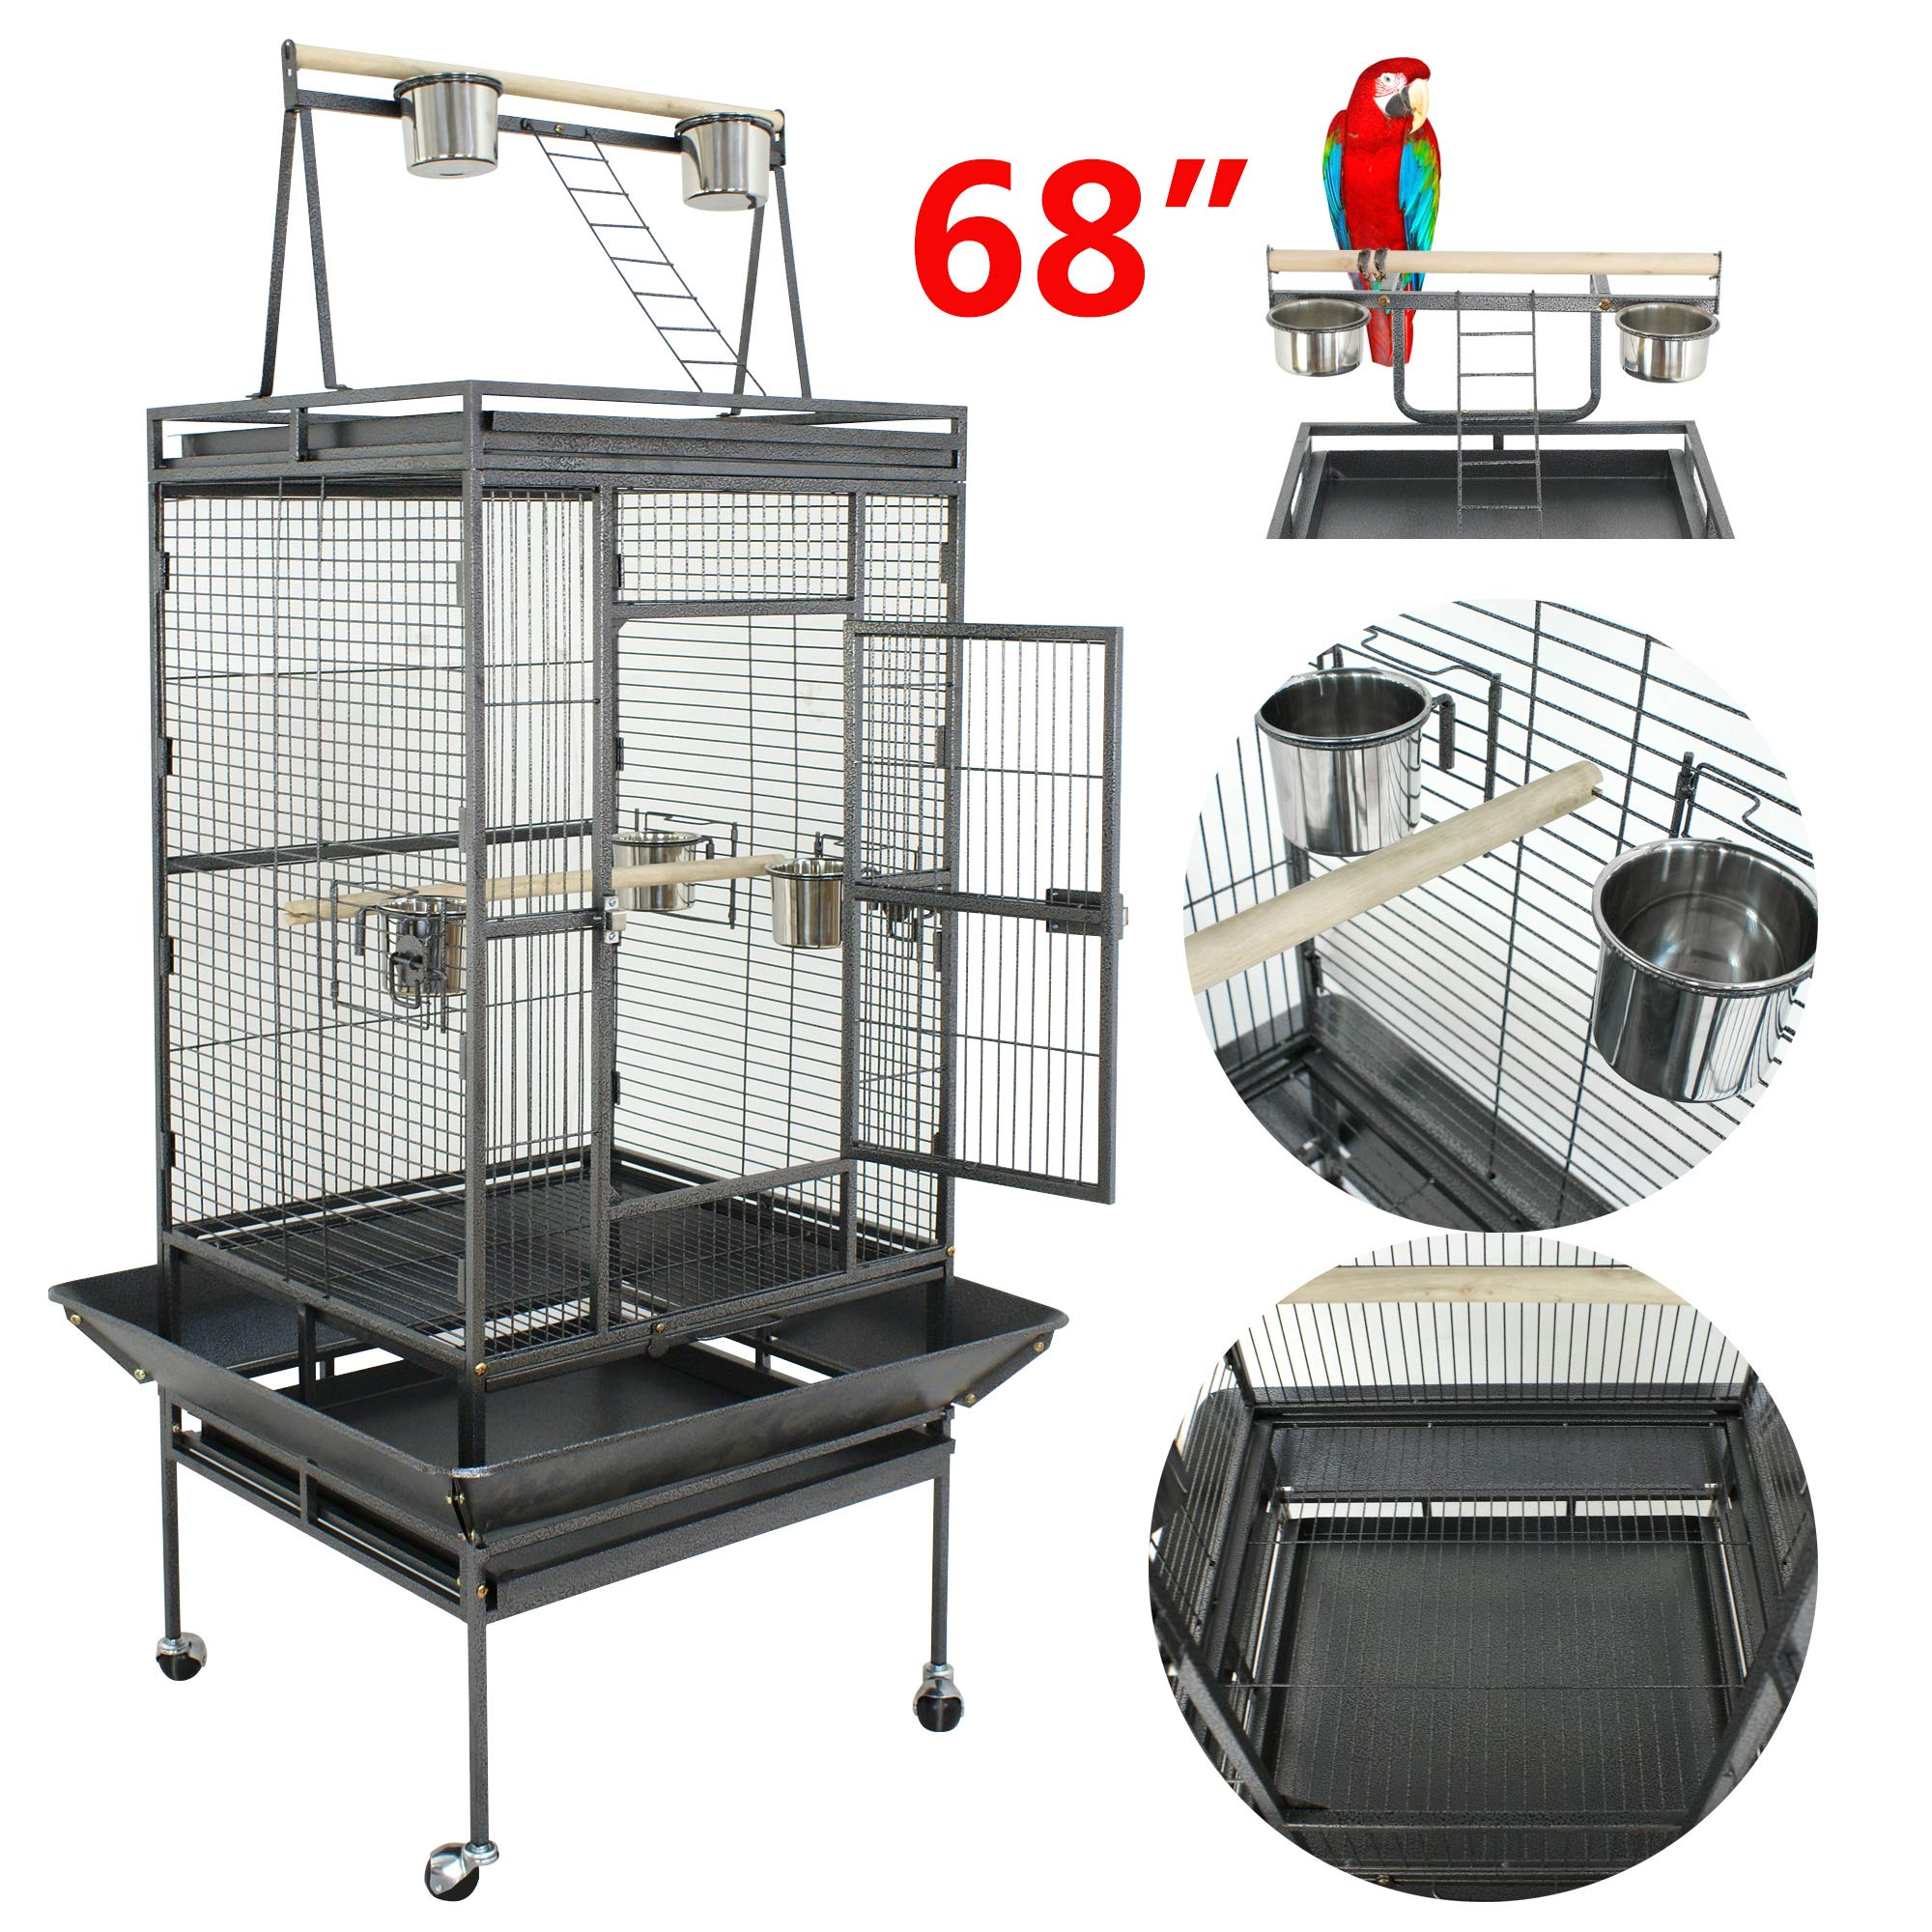 Super Deal 53''/61''/68'' Large Bird Cage Play Top Parrot Chinchilla Cage Macaw Cockatiel Cockatoo Pet House, 68 inch by SuperDealUsa